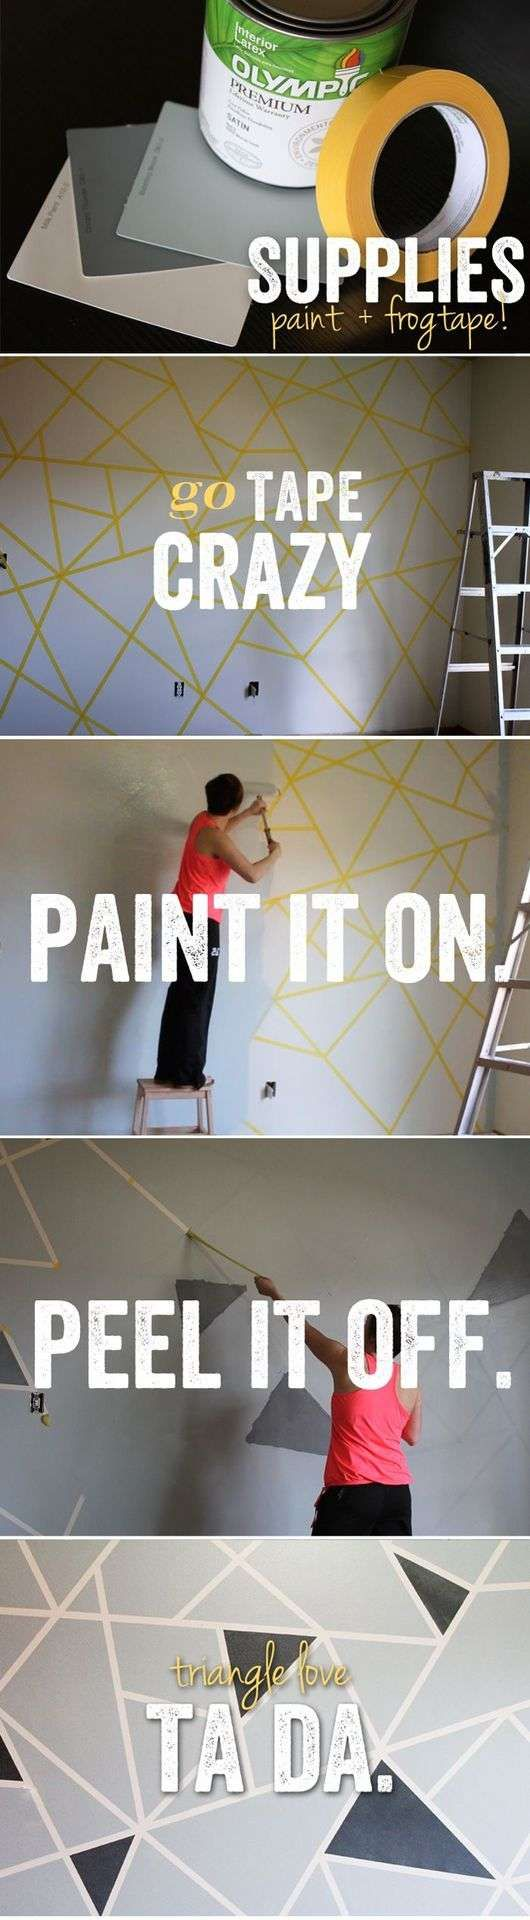 Easy DIY wall graphic & painting ideas